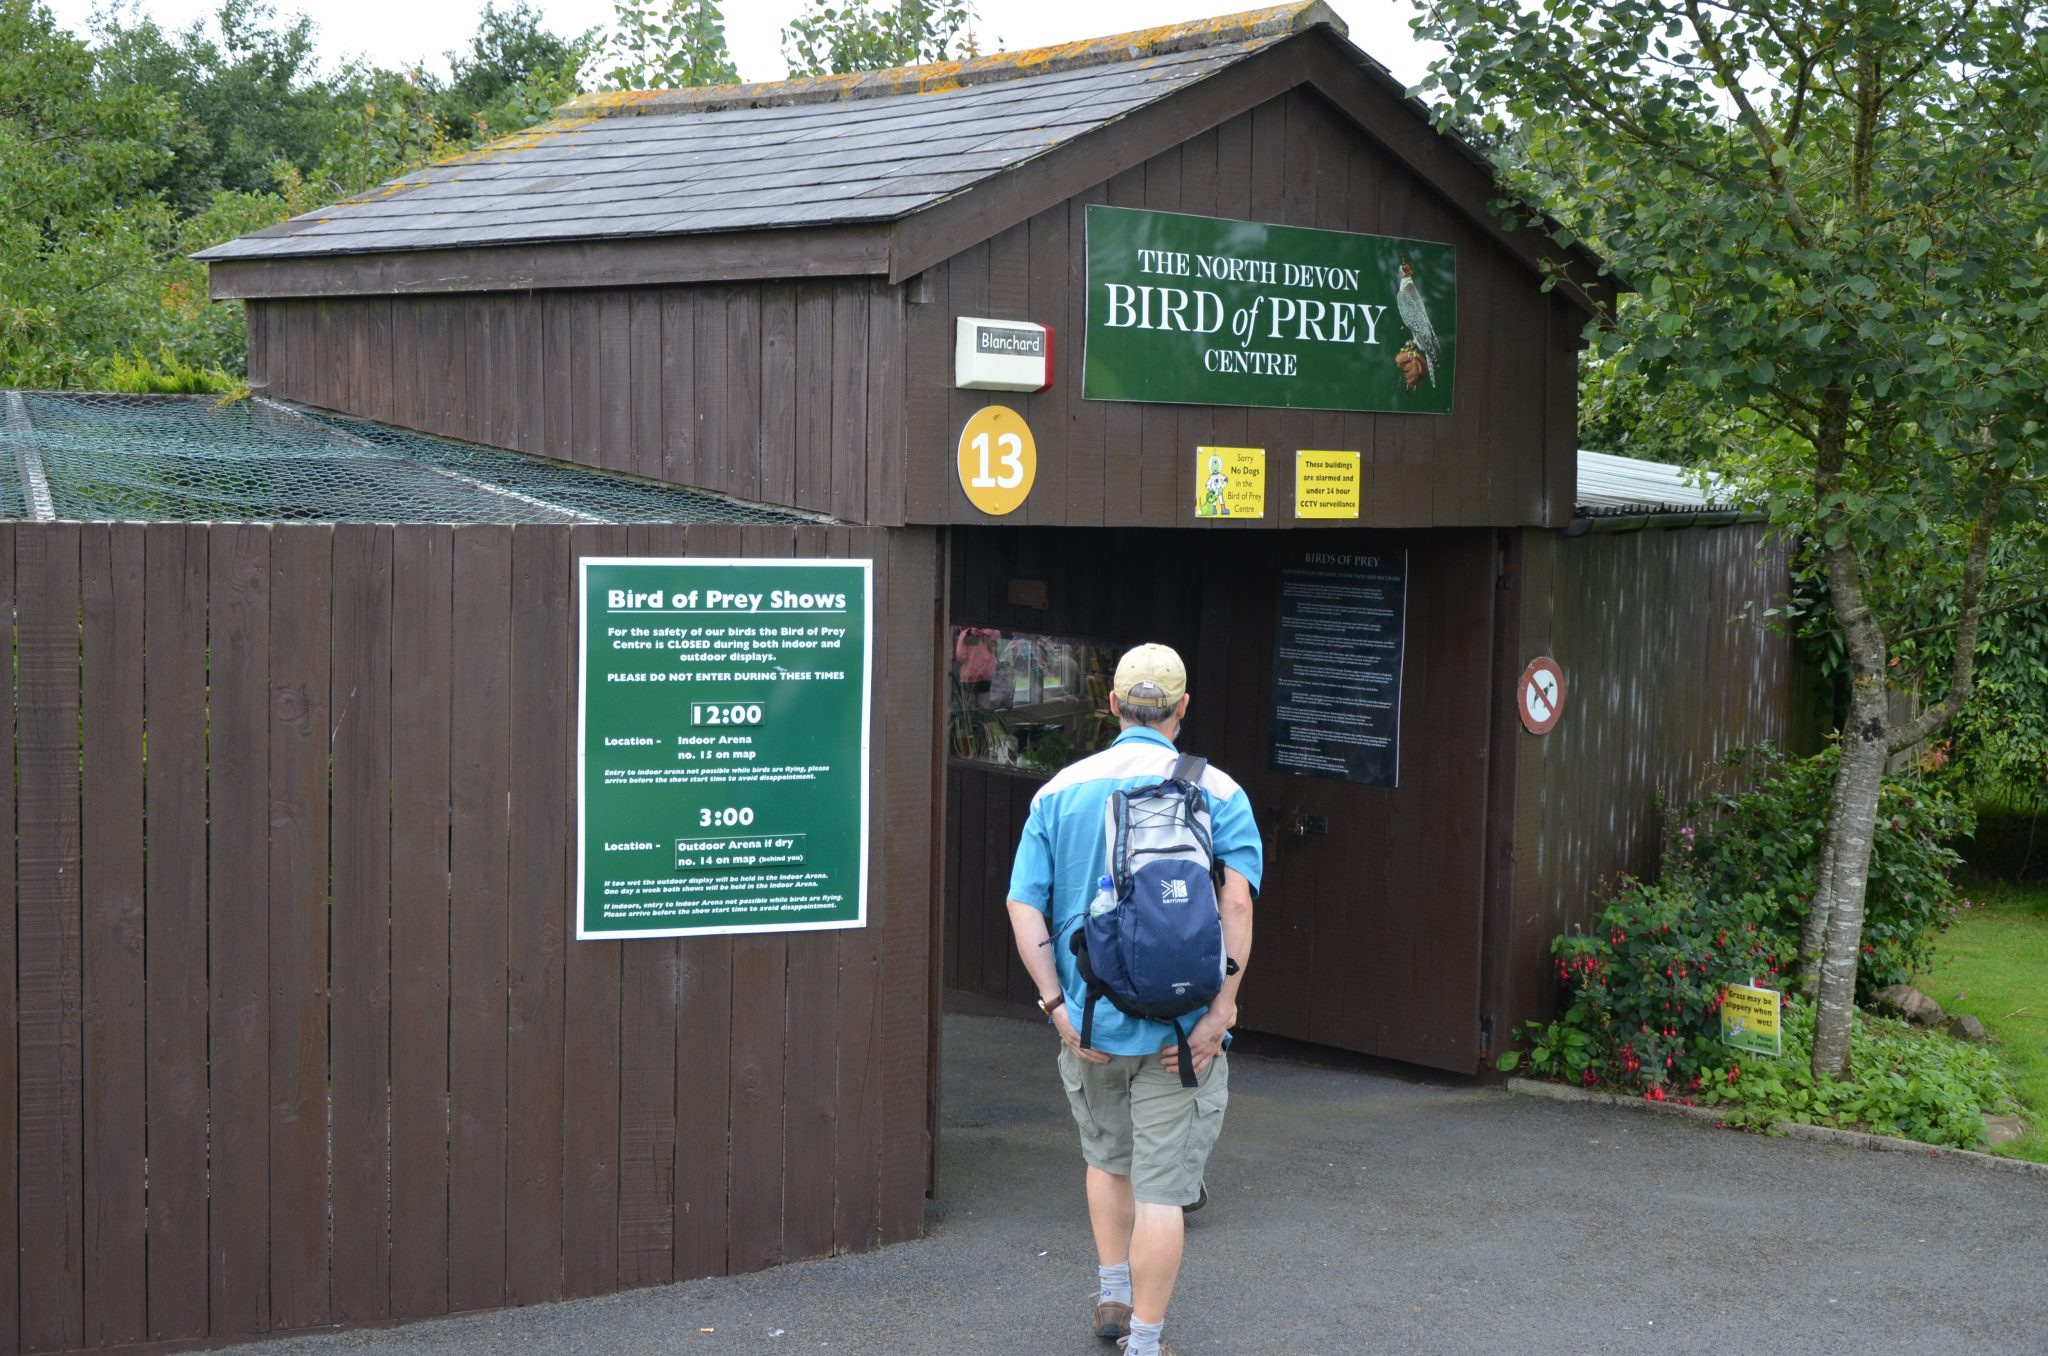 The Bird of Prey Centre